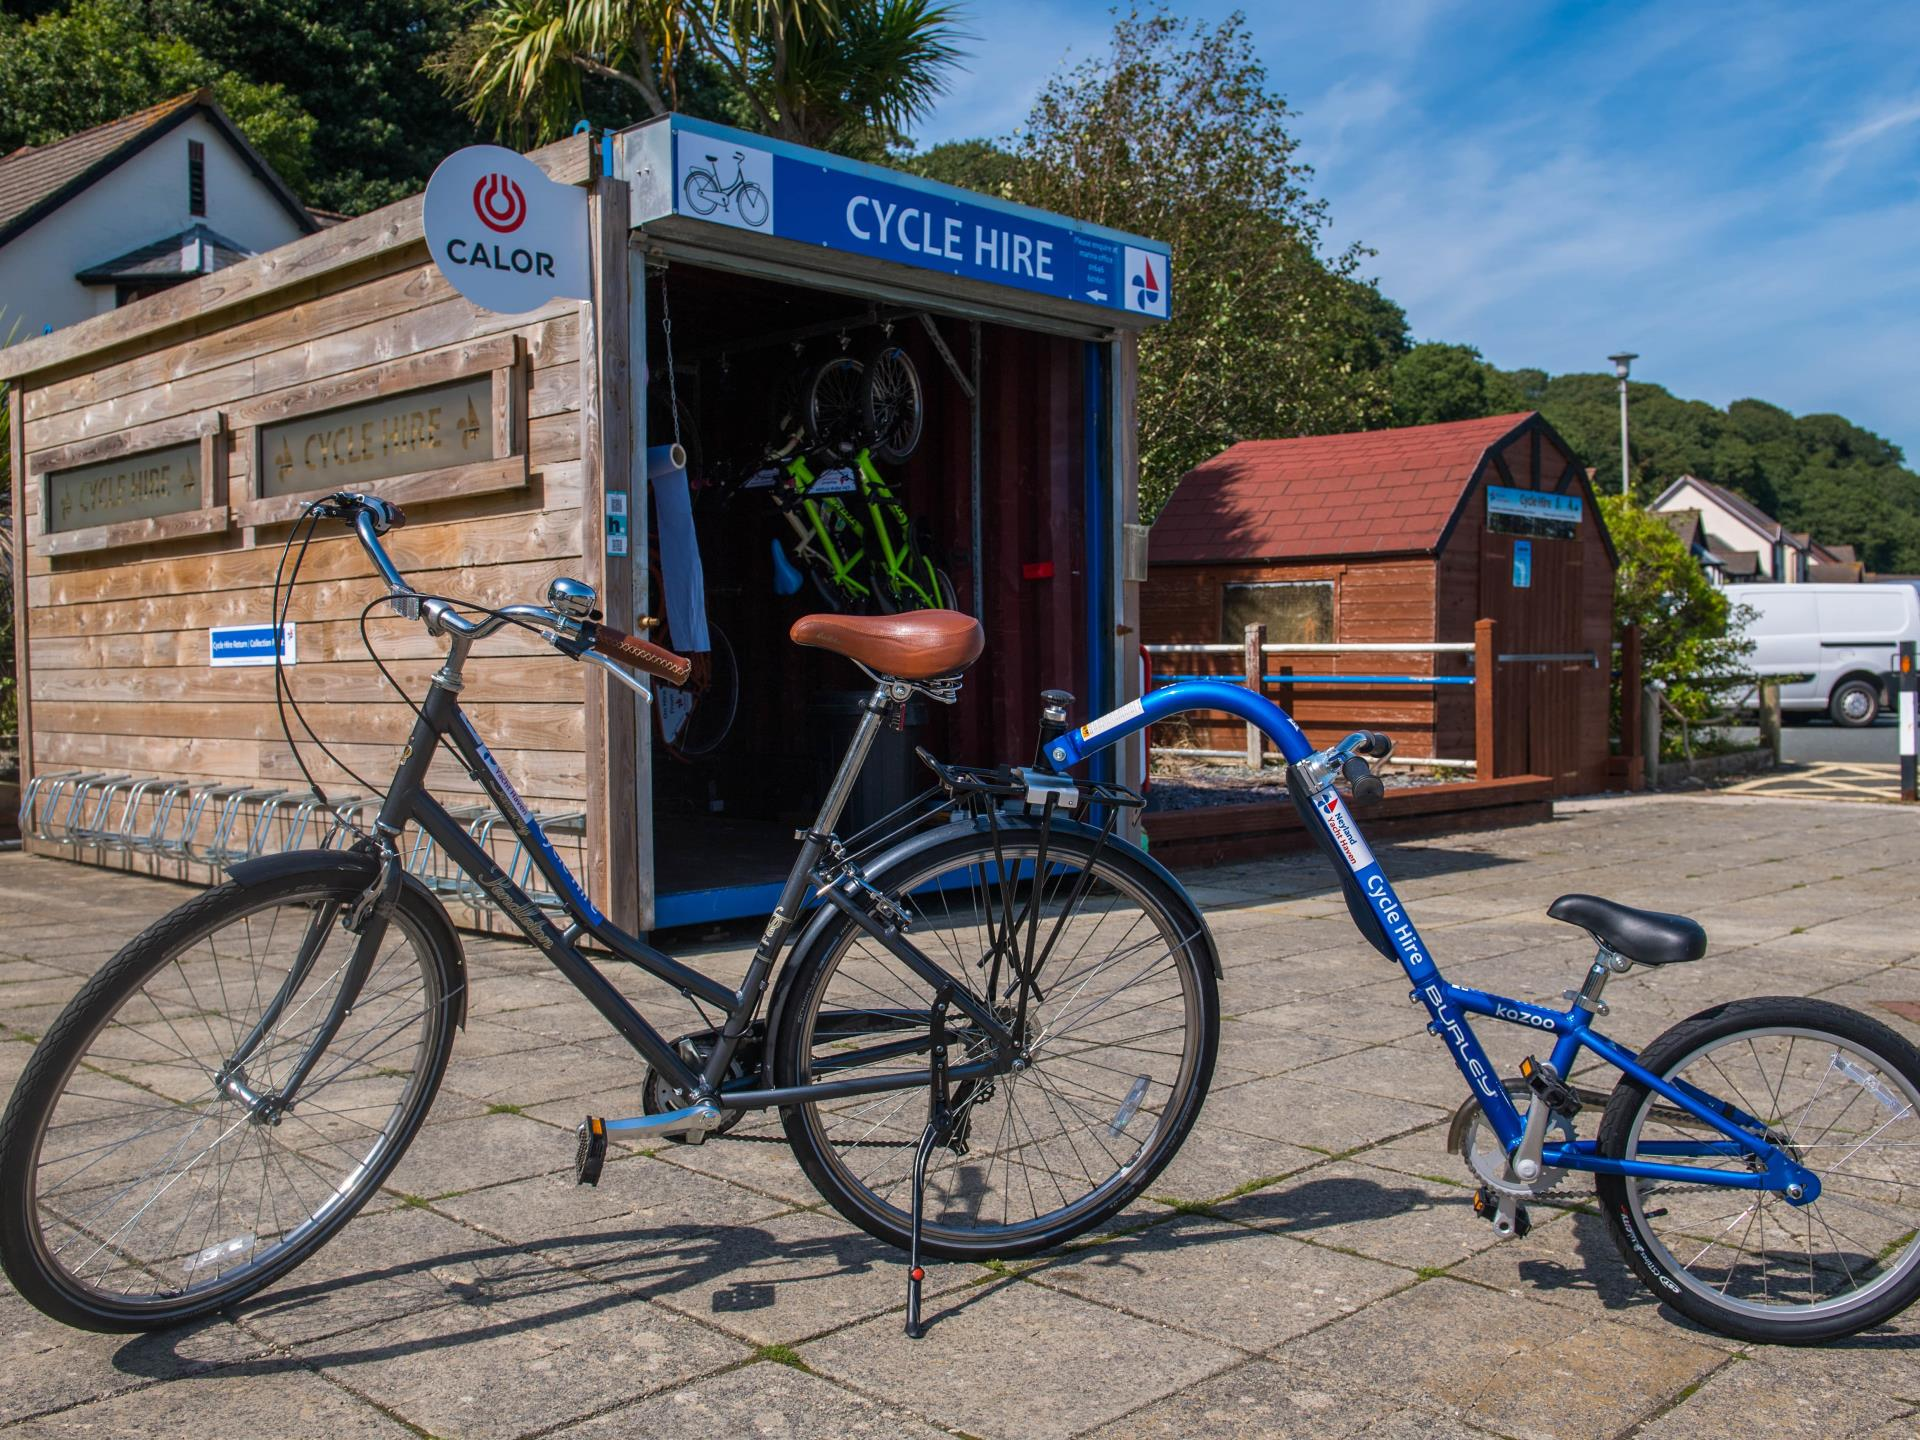 Bike hire available on-site